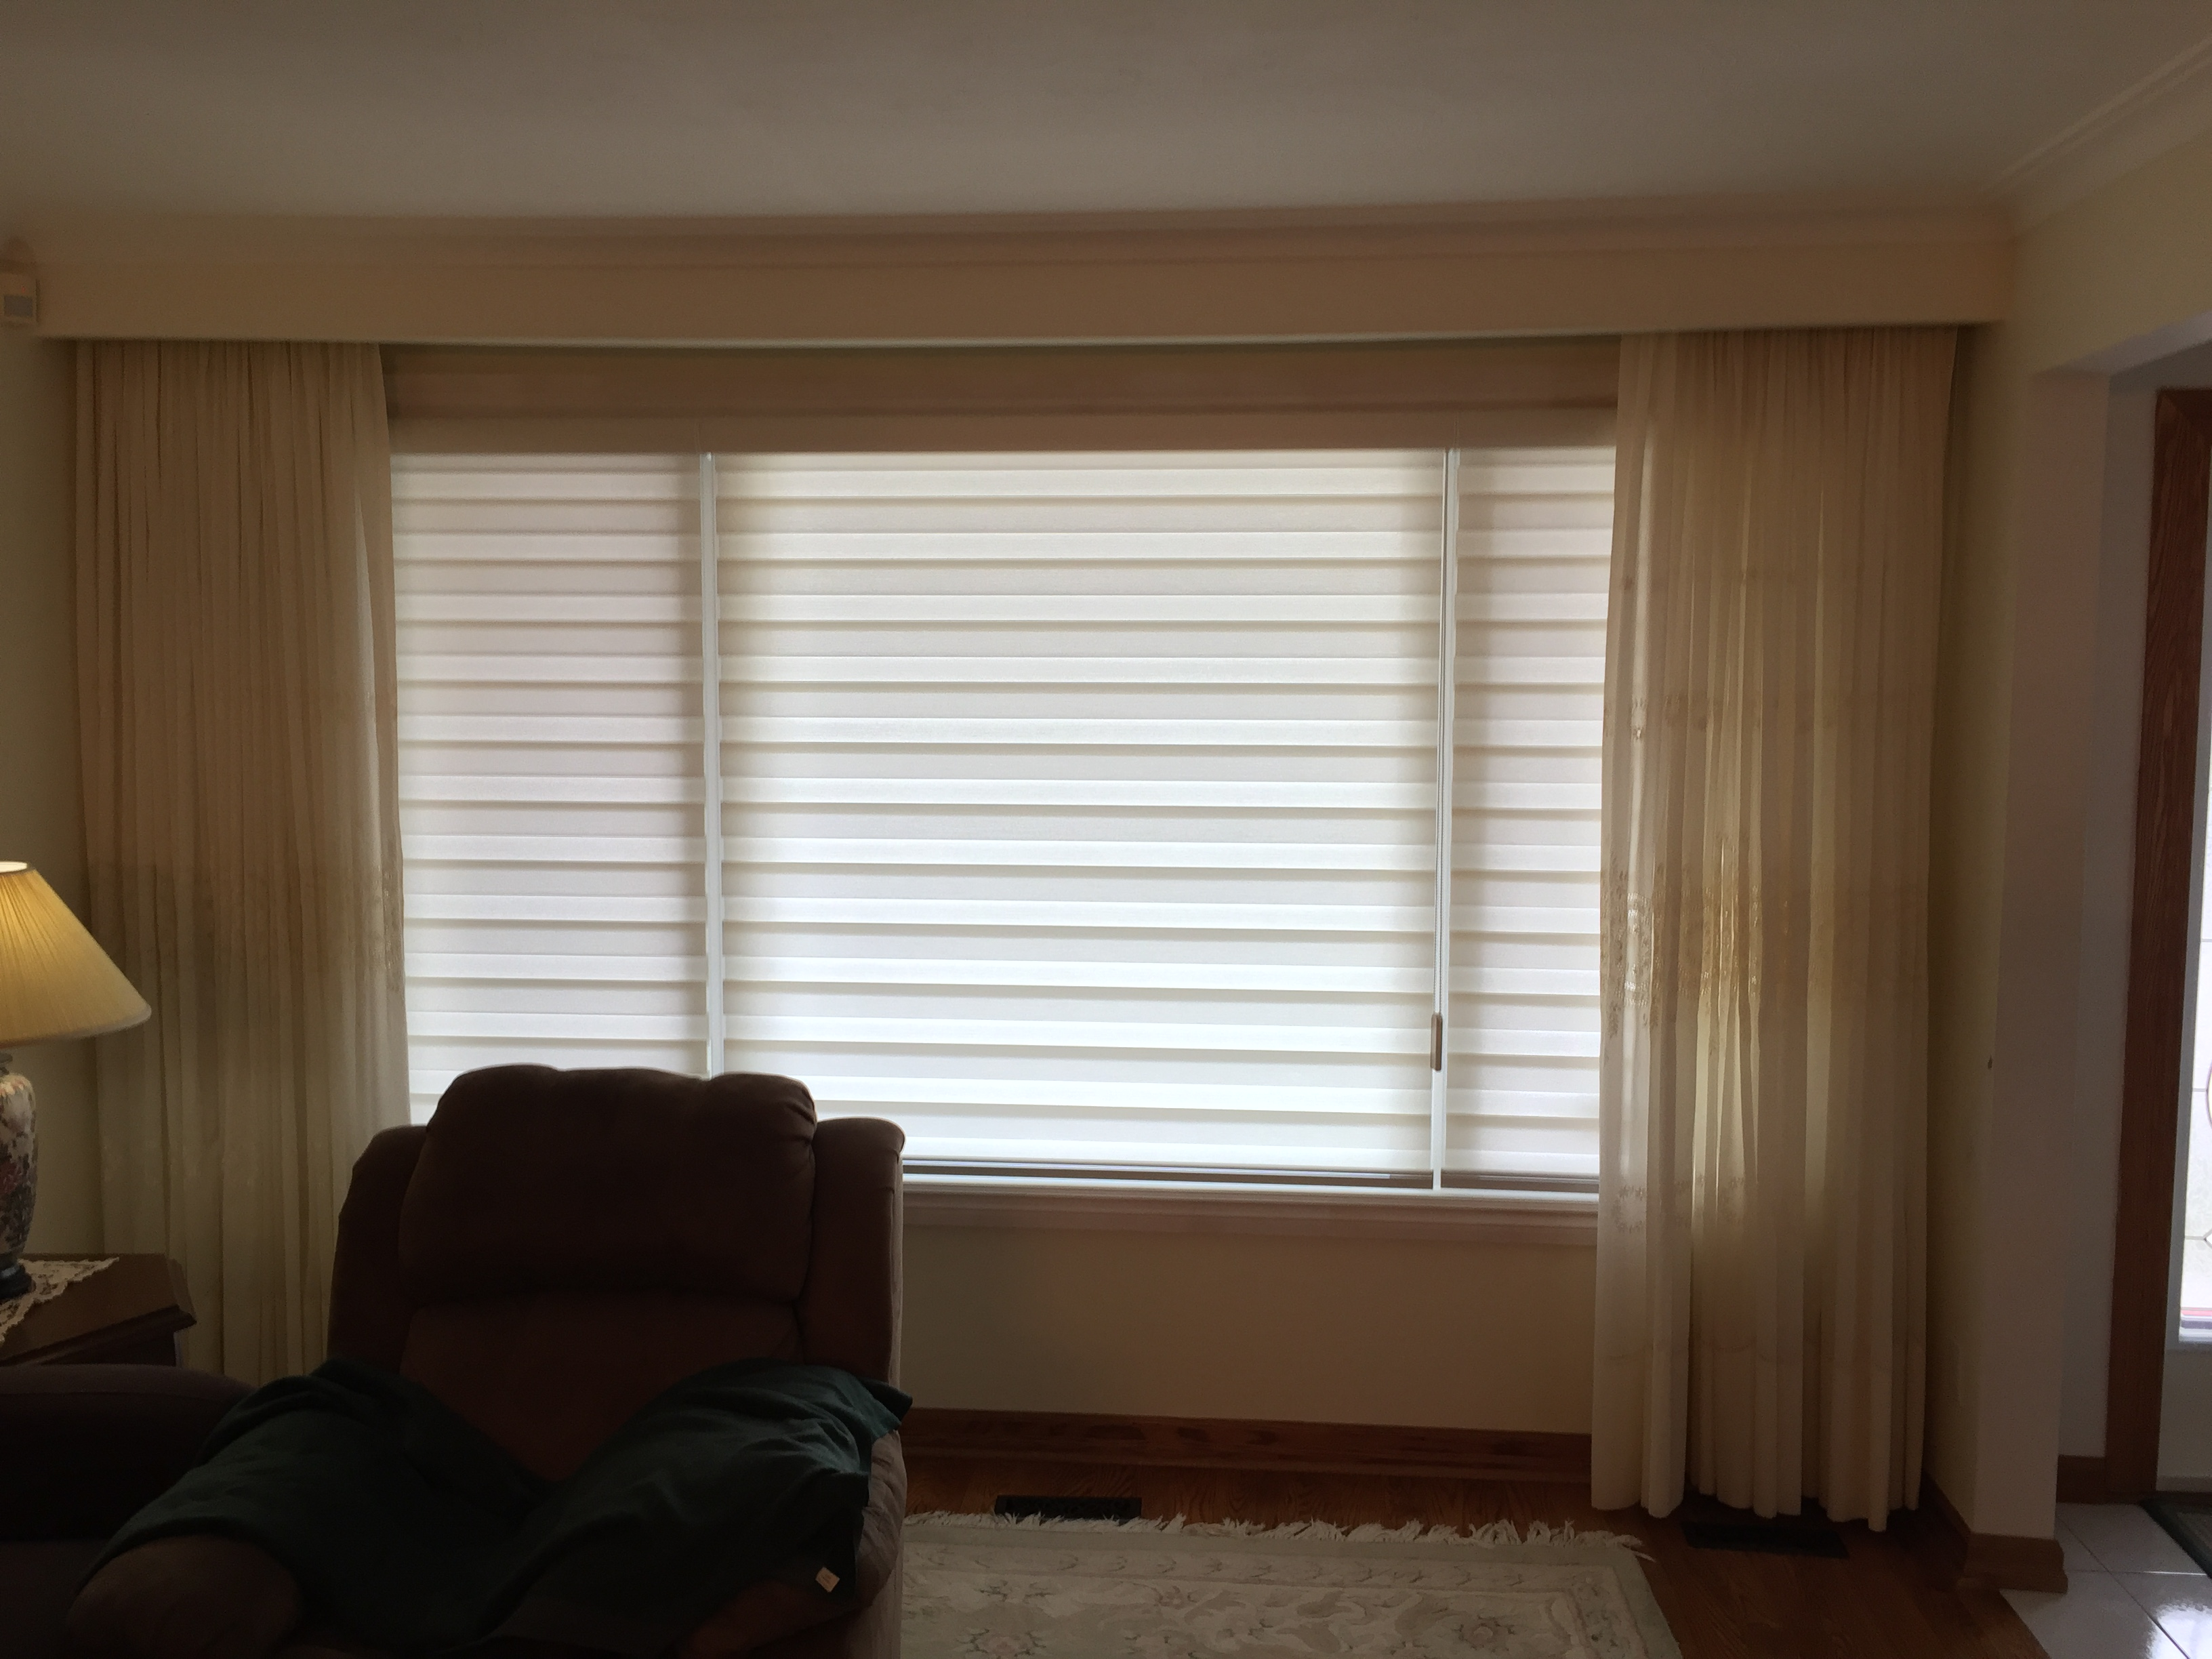 maxxmar kitchen treatments dual alternative hilite window shade of custom shades blinds banded mandalay a home